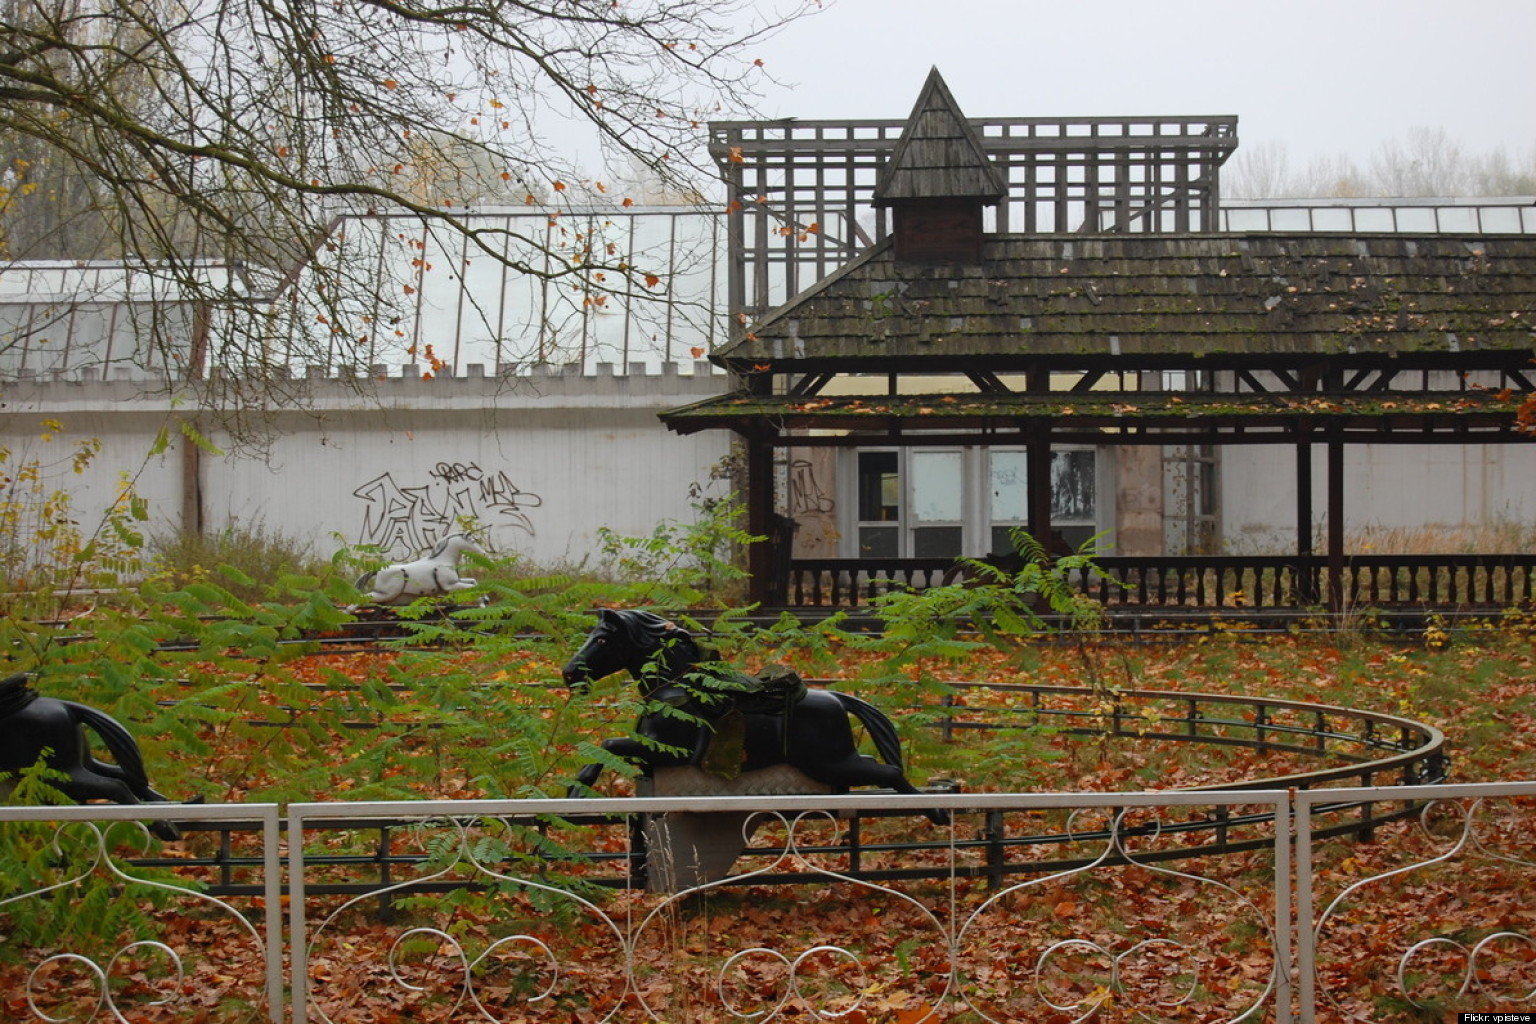 spreepark berlin sits abandoned 11 years after closing photos huffpost. Black Bedroom Furniture Sets. Home Design Ideas